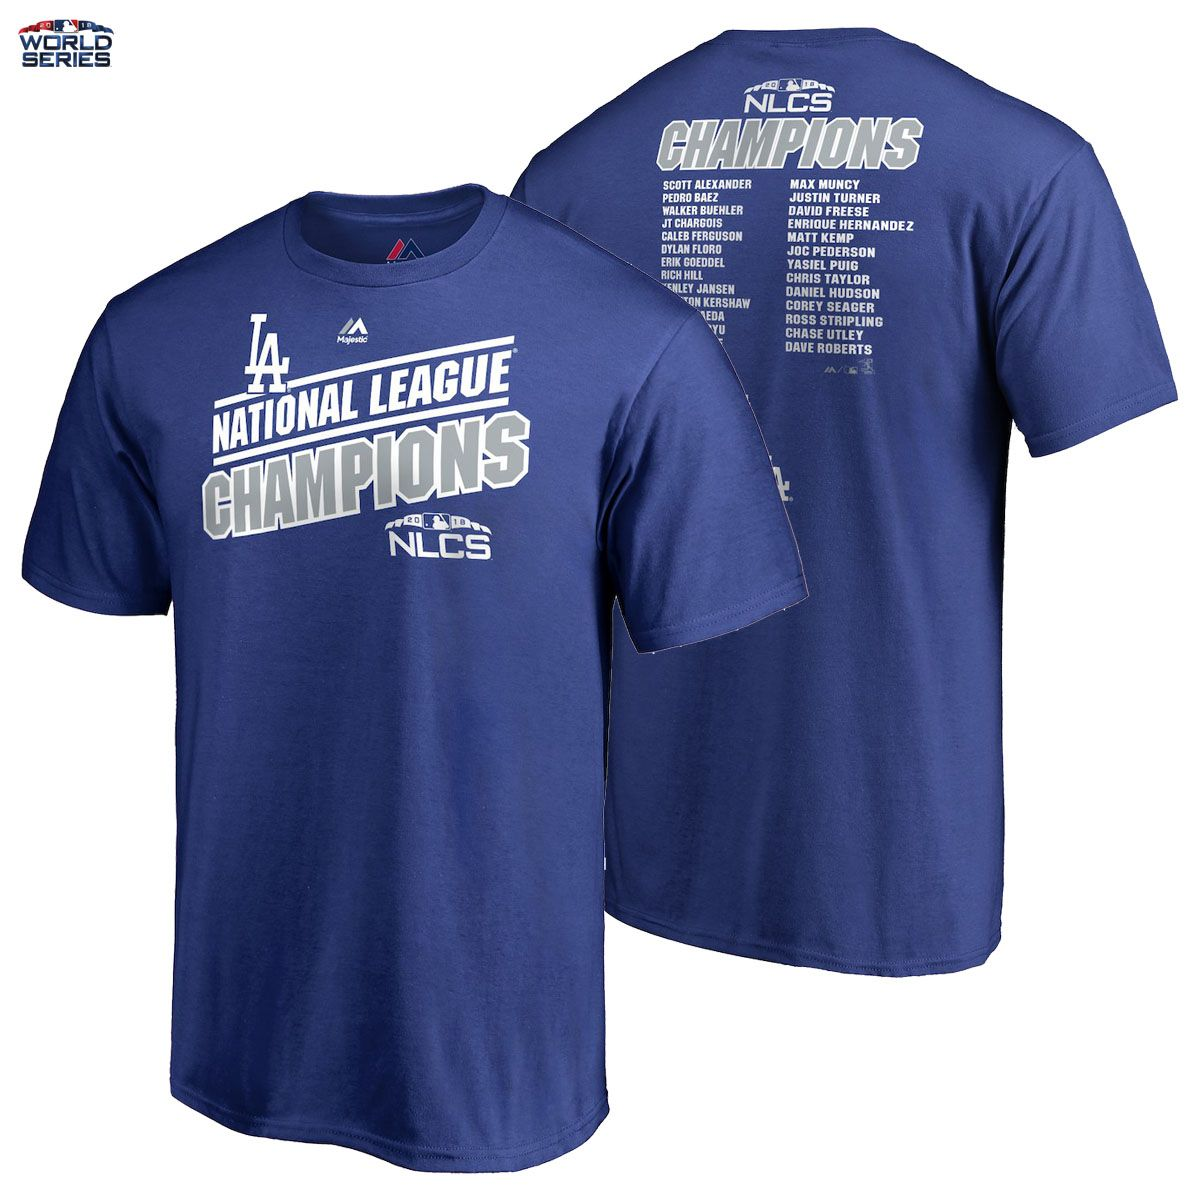 Los Angeles Dodgers Majestic 2018 World Series T-Shirt National League  Champions THEY MADE IT!!!! The Los Angeles Lakers Are Officially World  Series ... 1582b80f0